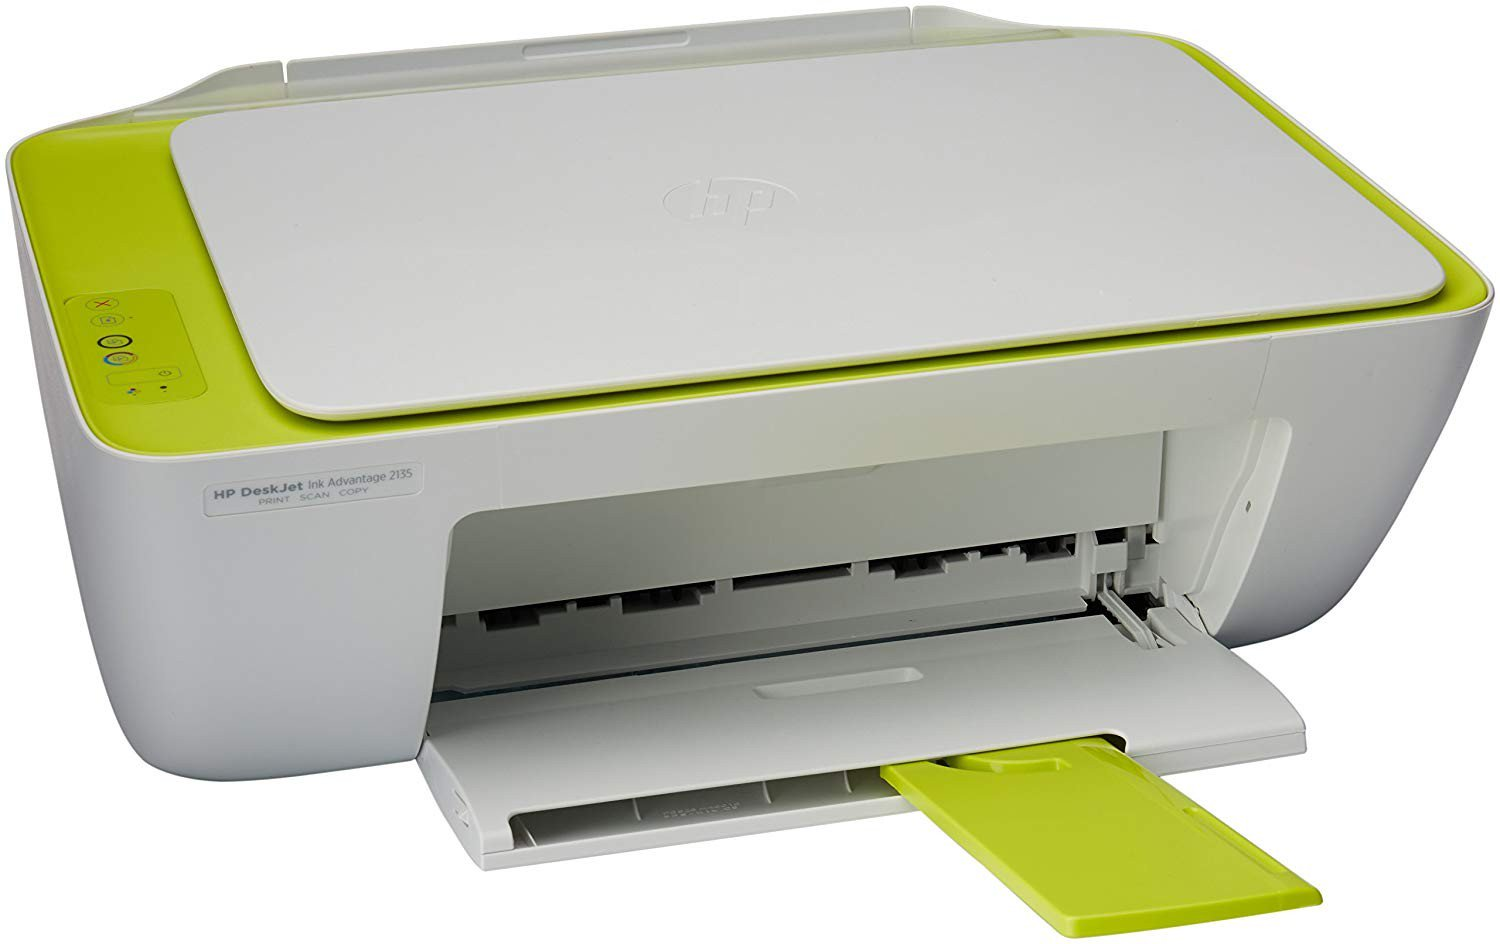 Download Driver Komputer Hp Deskjet 2135 For Mac